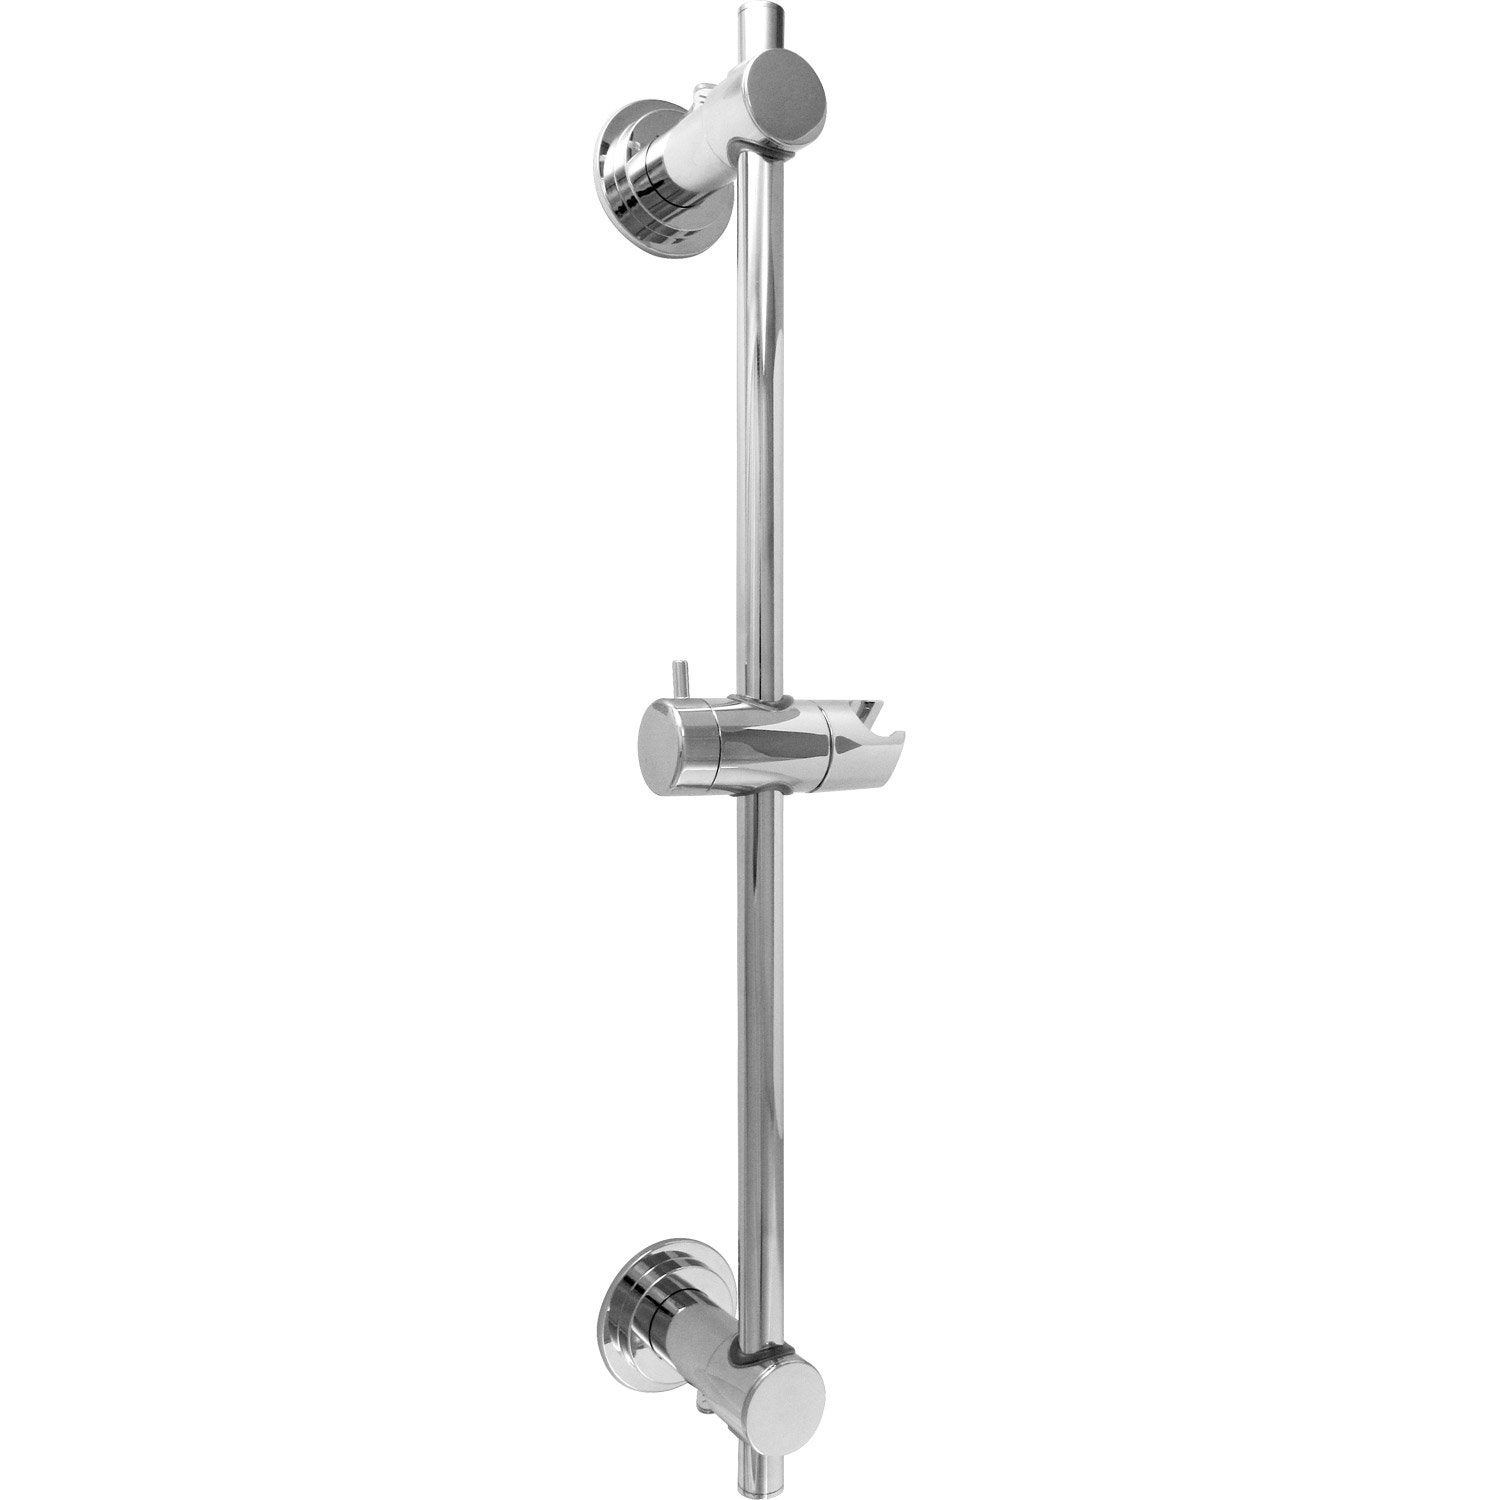 Barre de douche chrome a ventouses leroy merlin - Chaise douche leroy merlin ...